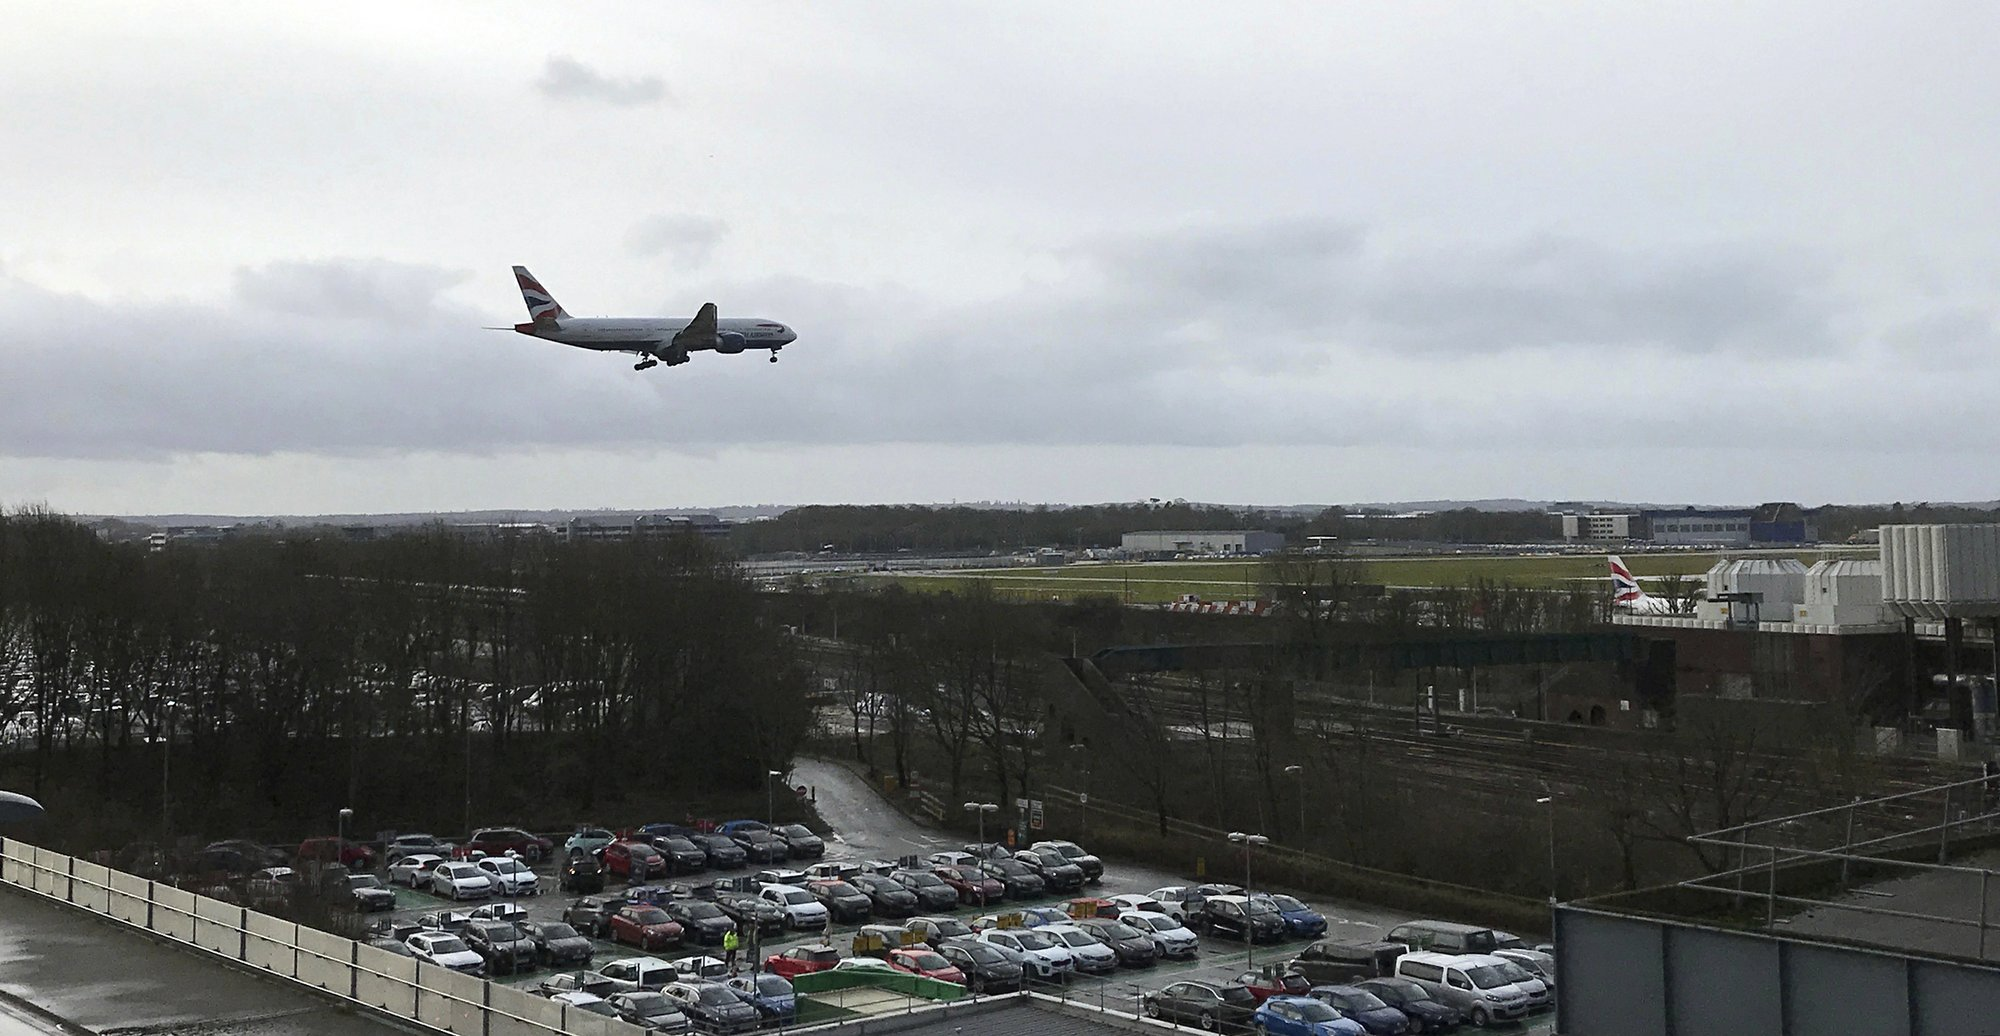 UK police free 2 drone suspects in Gatwick travel chaos